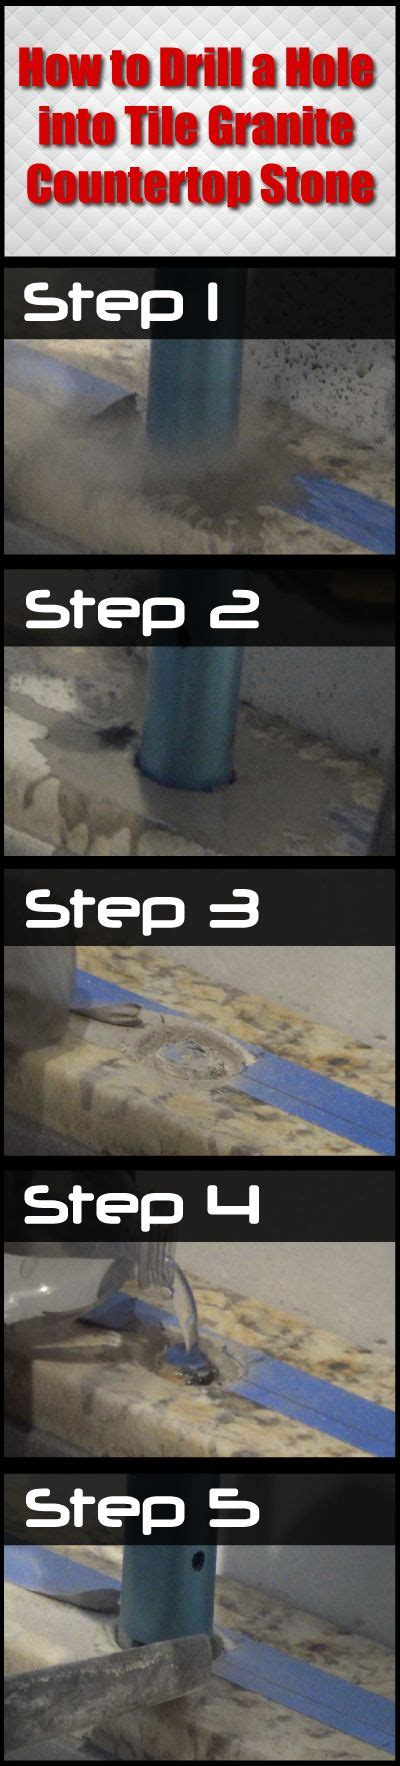 how to drill a into tile granite countertop a